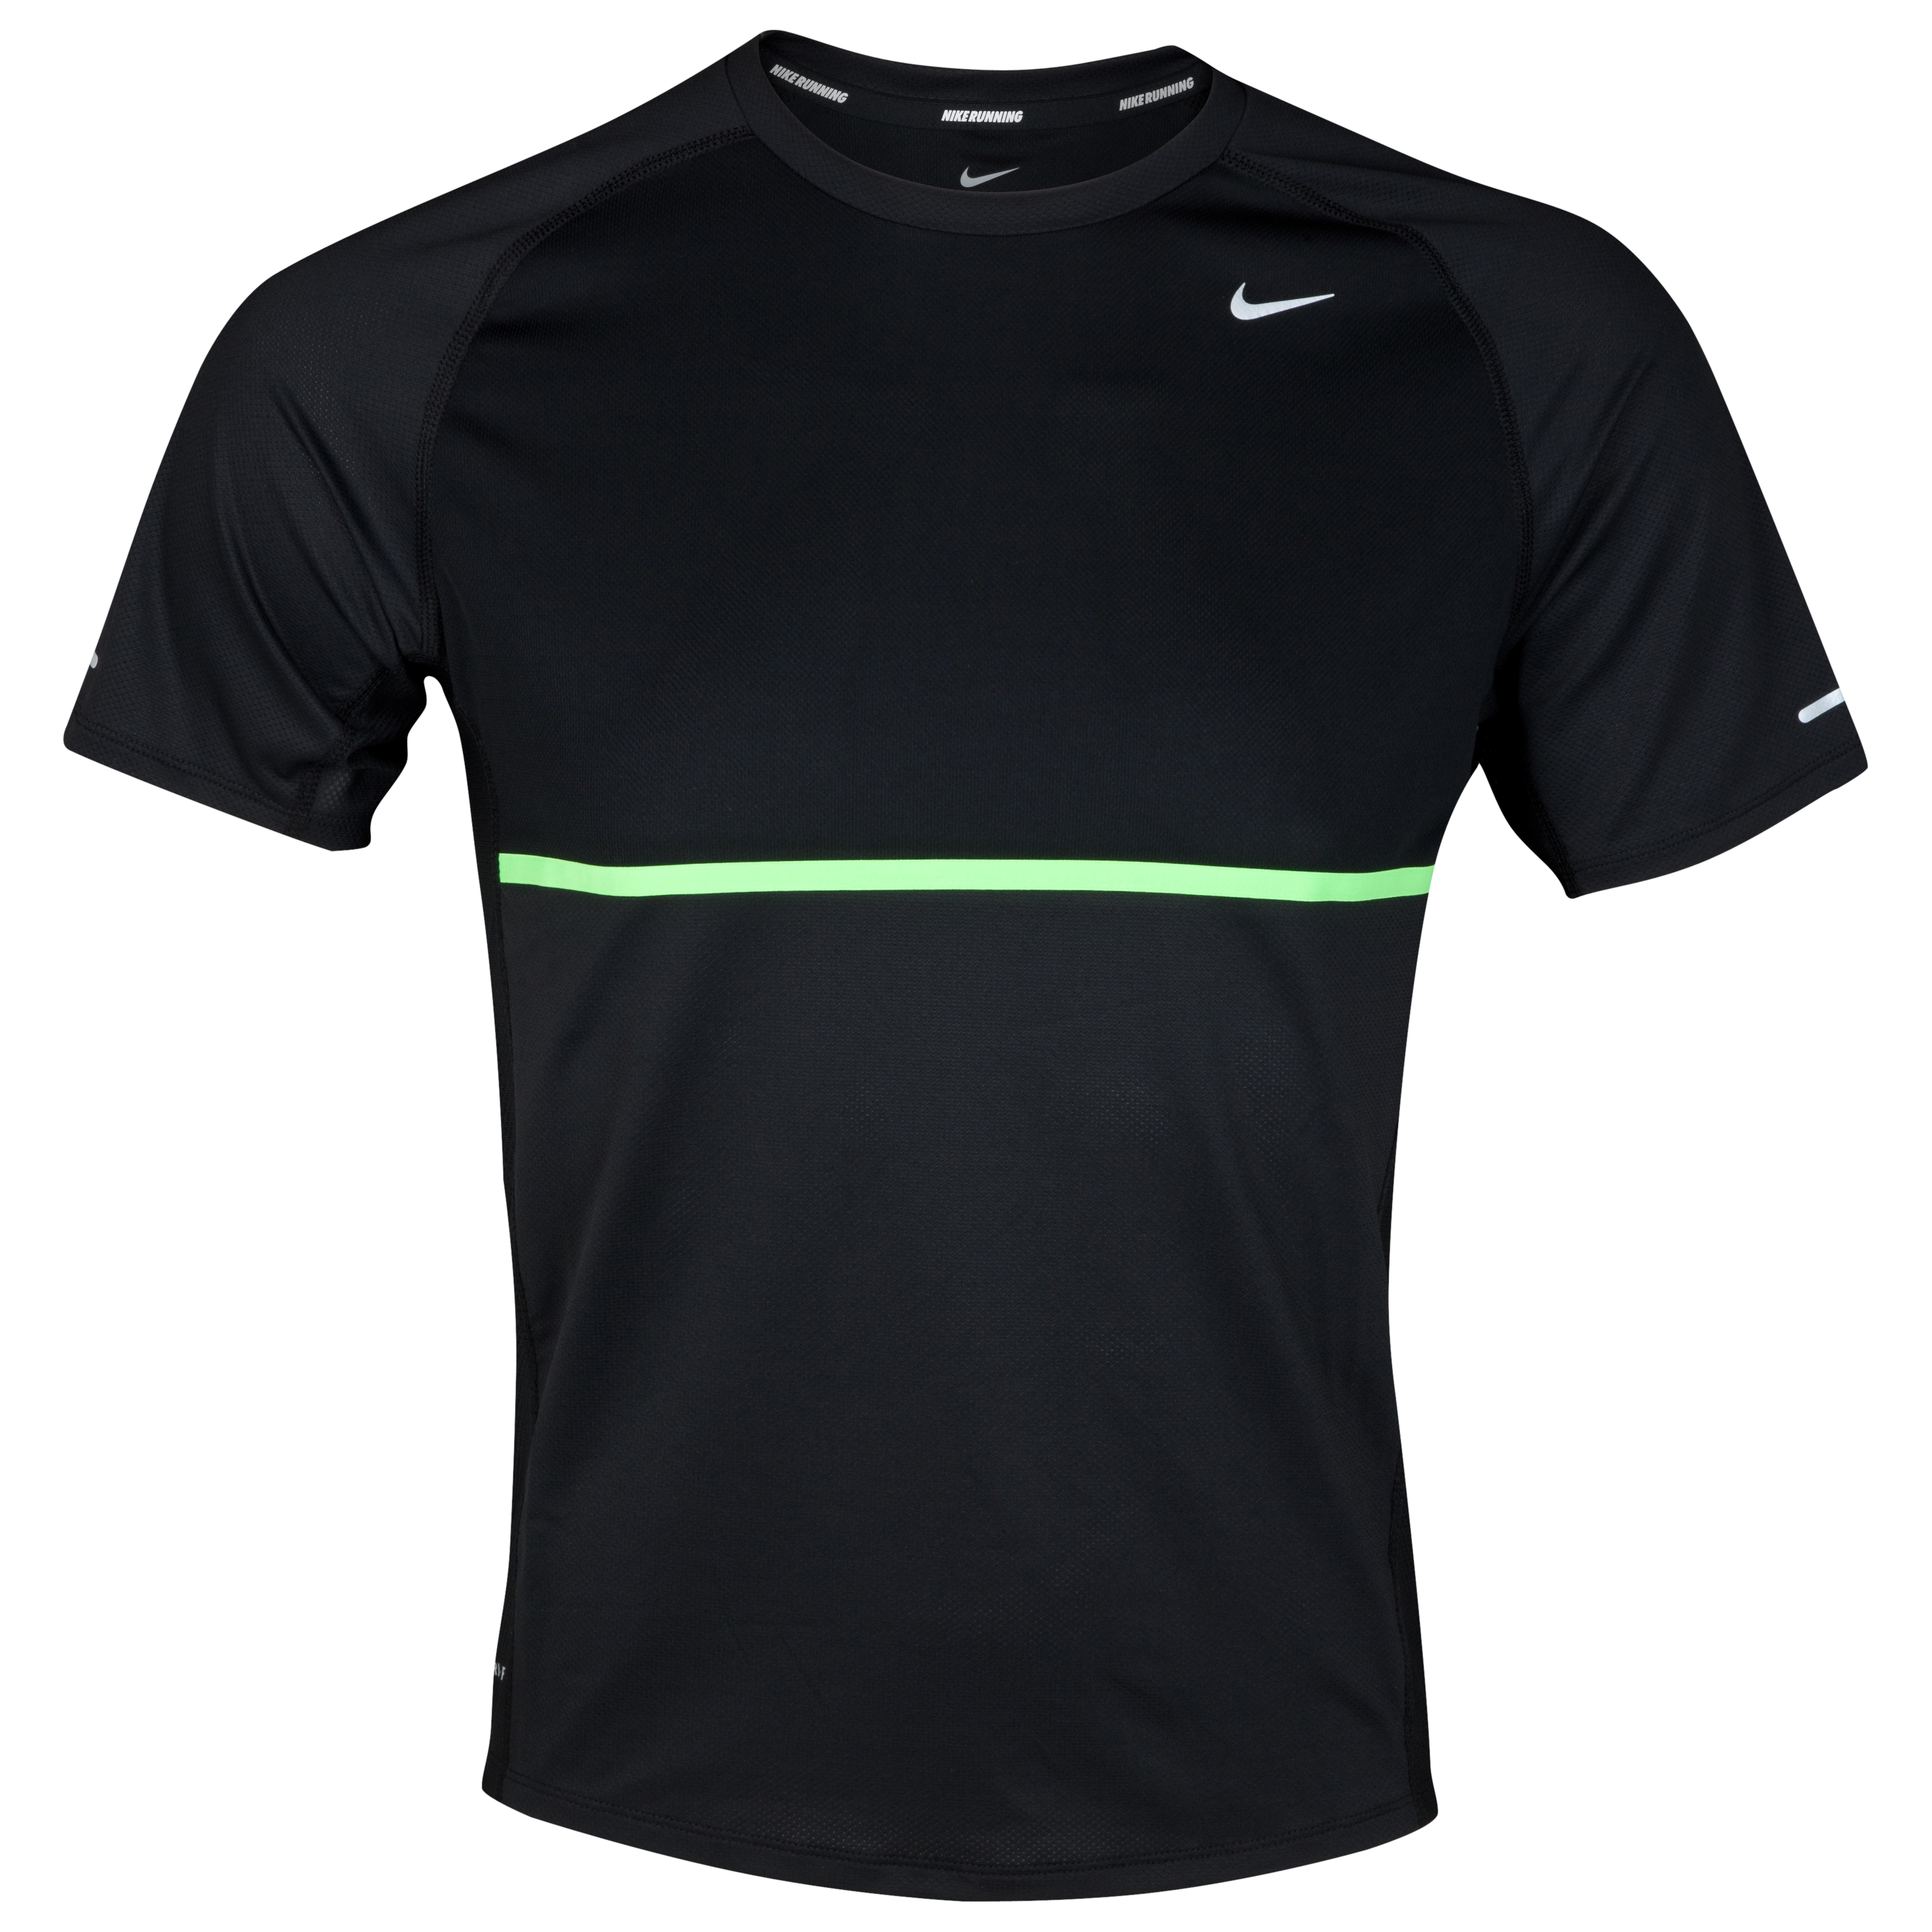 Nike Sphere T-Shirt - Black/Reflective Silver